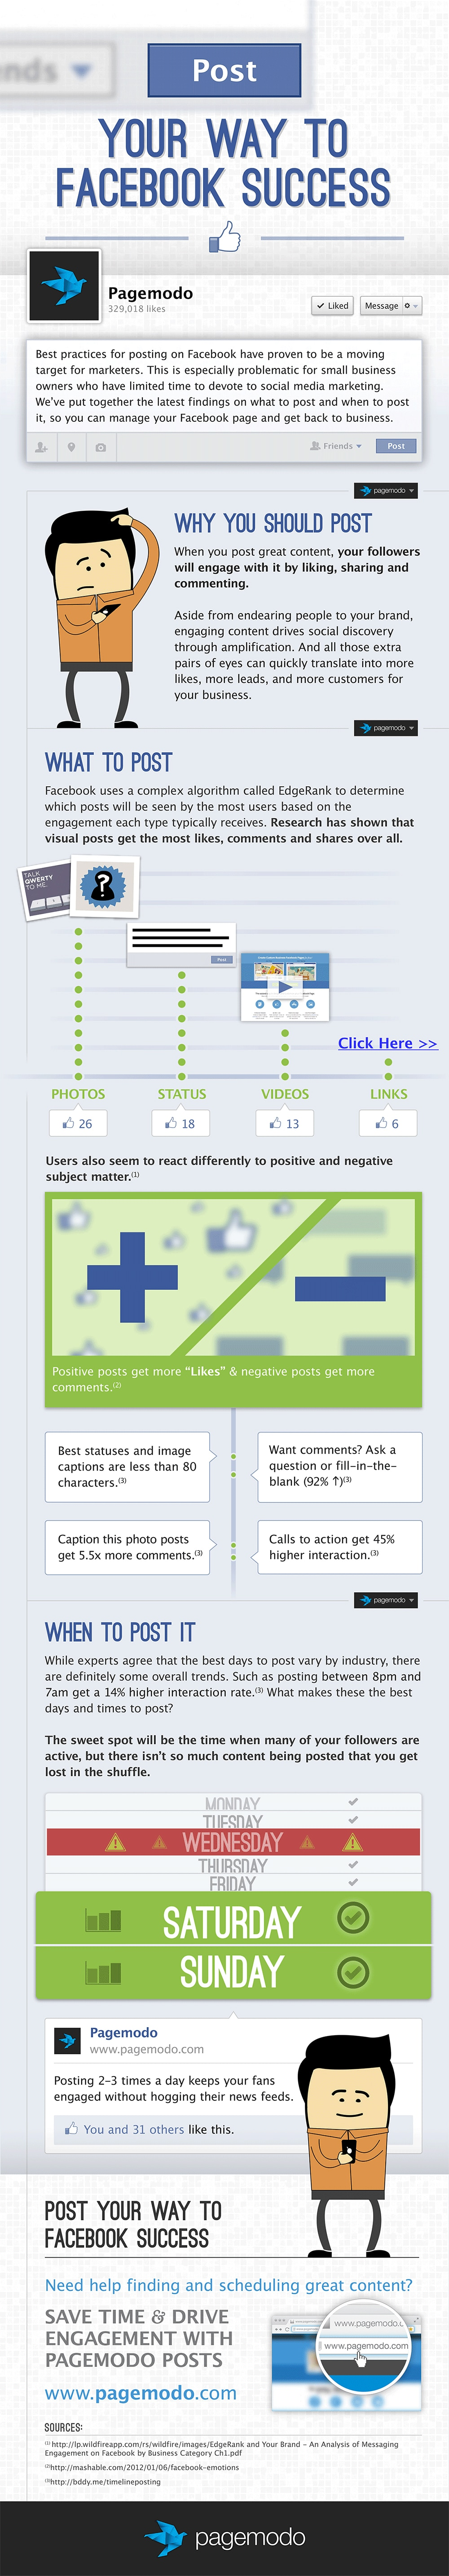 Facebook Success: The Why, What & When To Post Guide [Infographic]